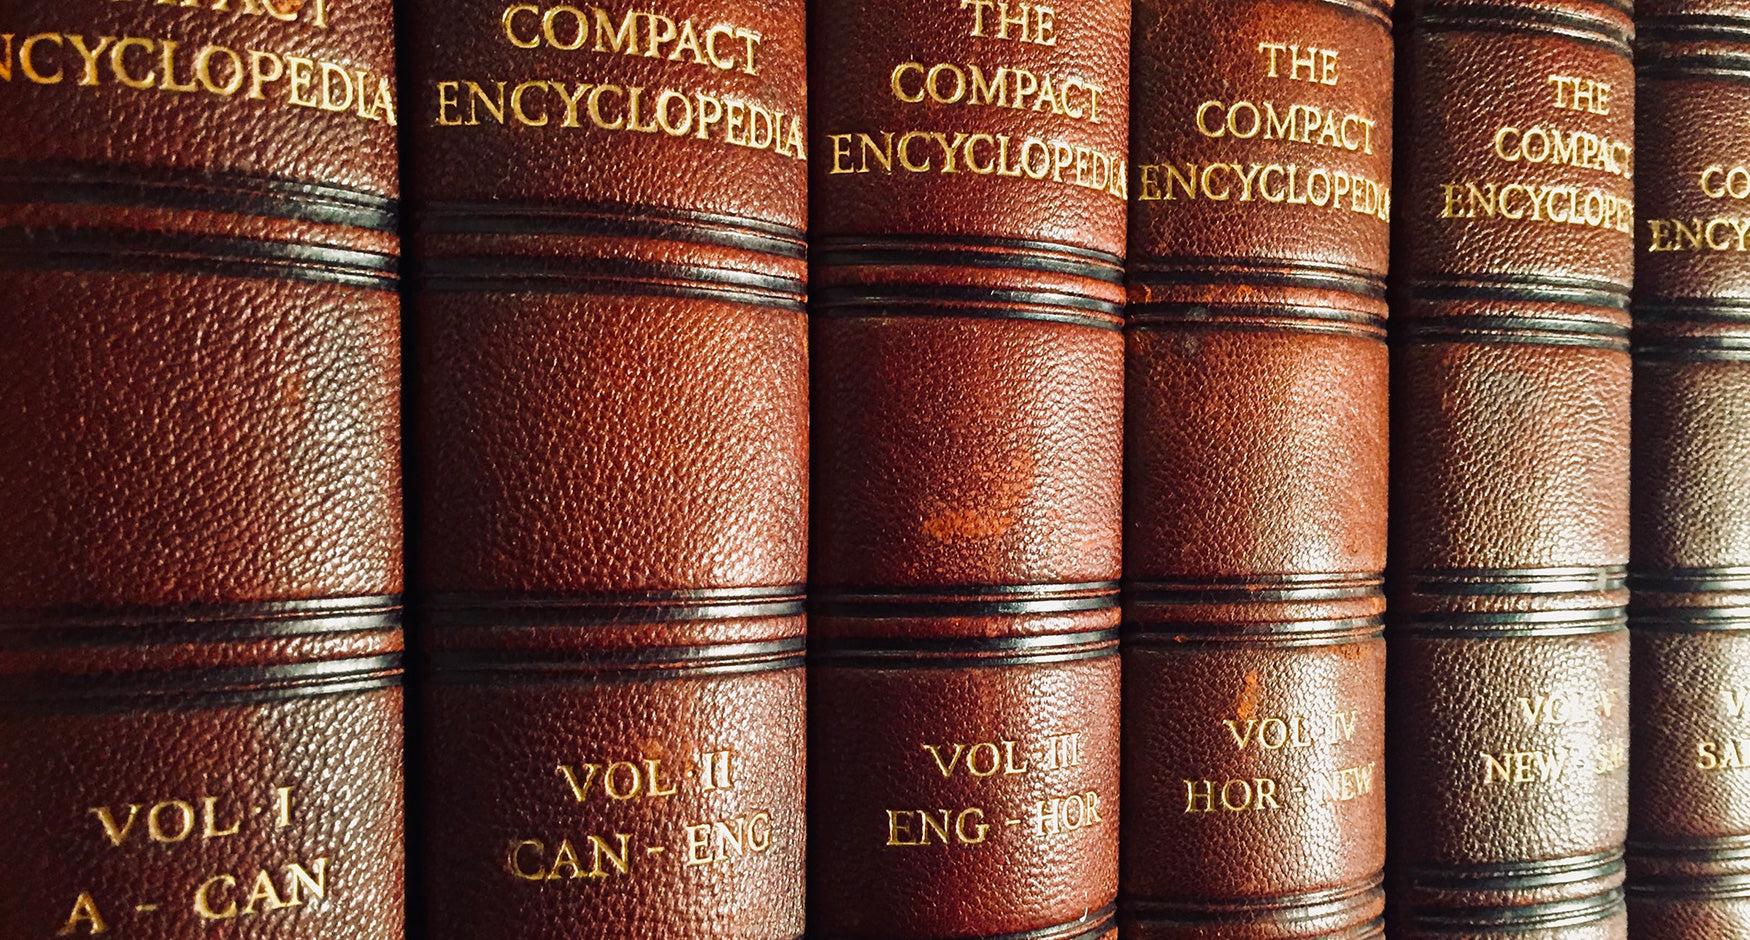 July 1, 1751: Publication of the Encyclopedia's first volumes